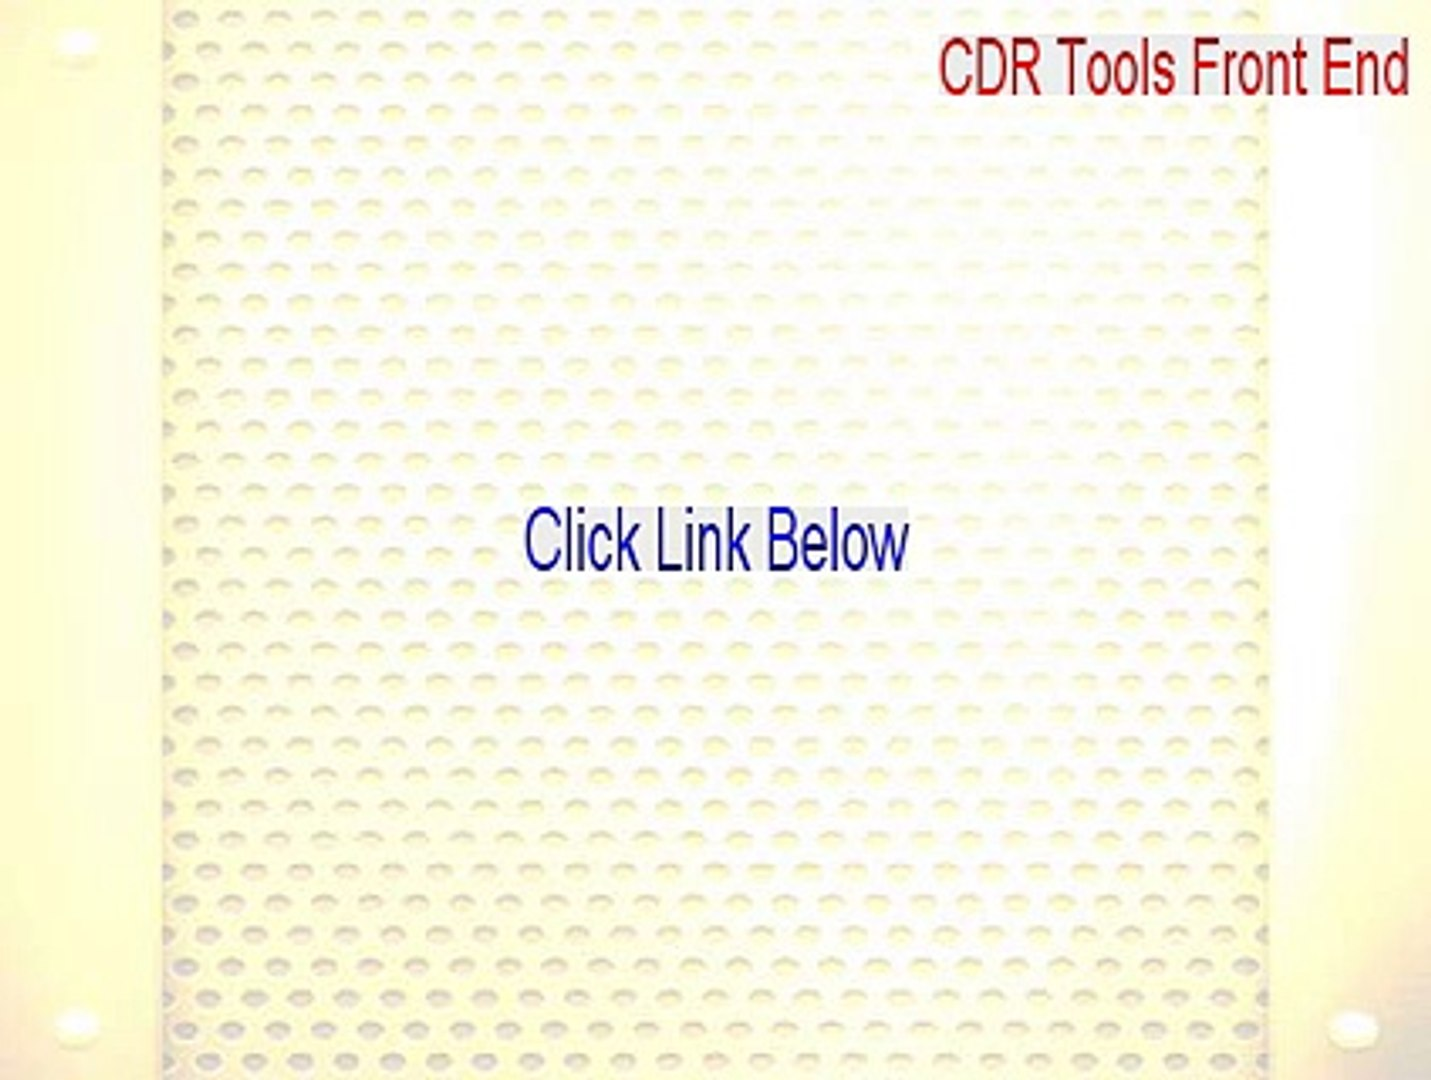 CDR Tools Front End Download - cdr tools front end download 2015